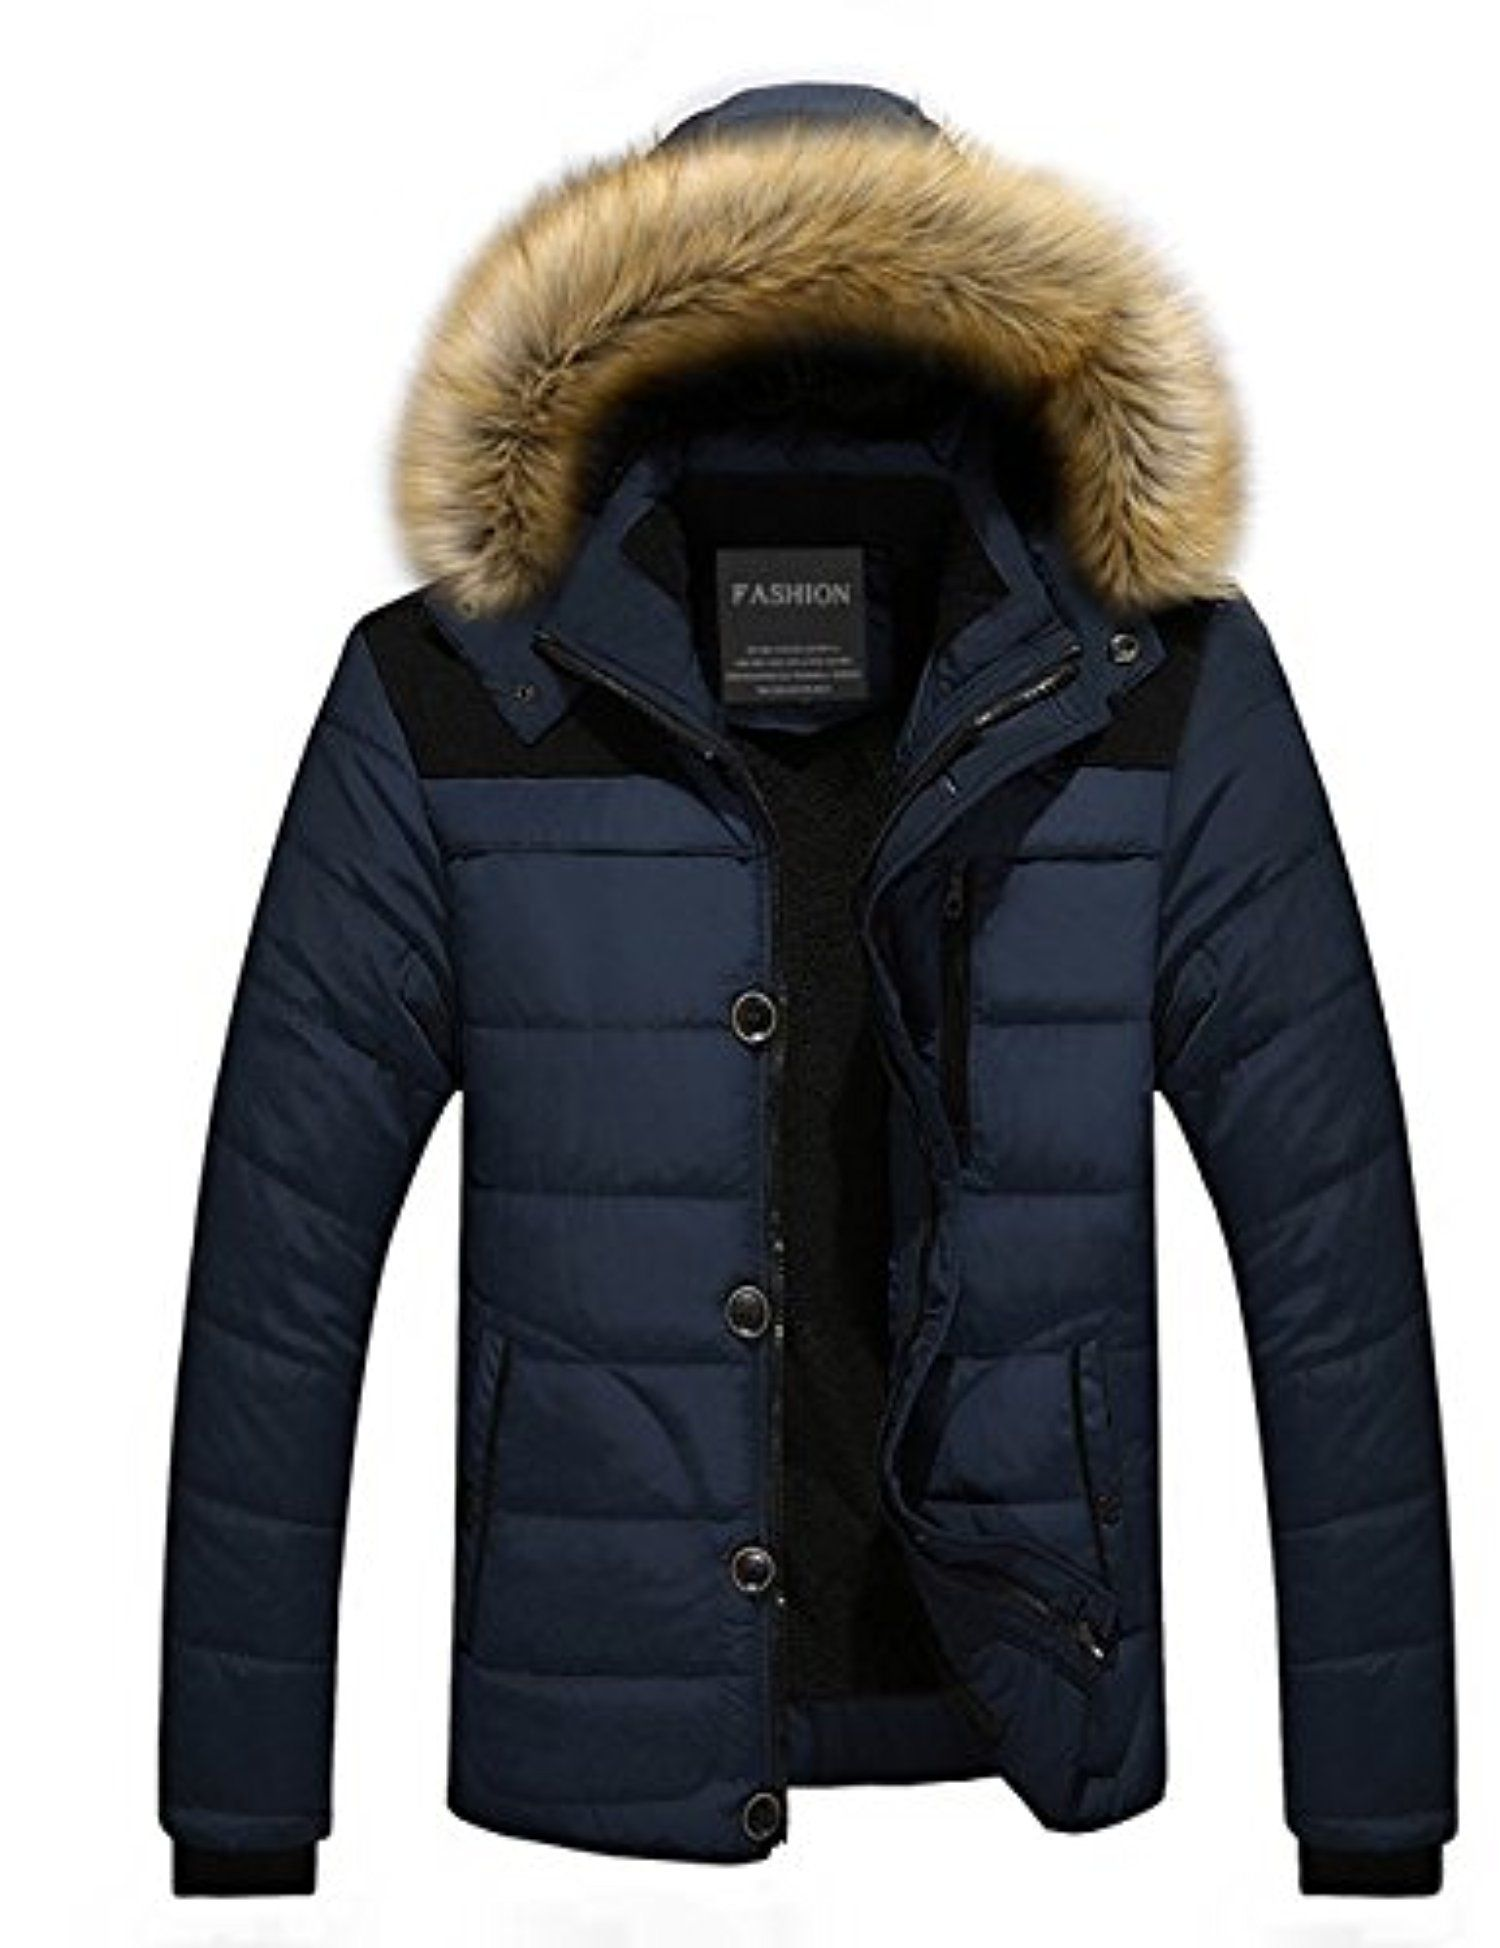 65947ad916a Menschwear Men s Faux Fur Hooded Down Jacket Parka Coat Flannel Lined  6692(XL